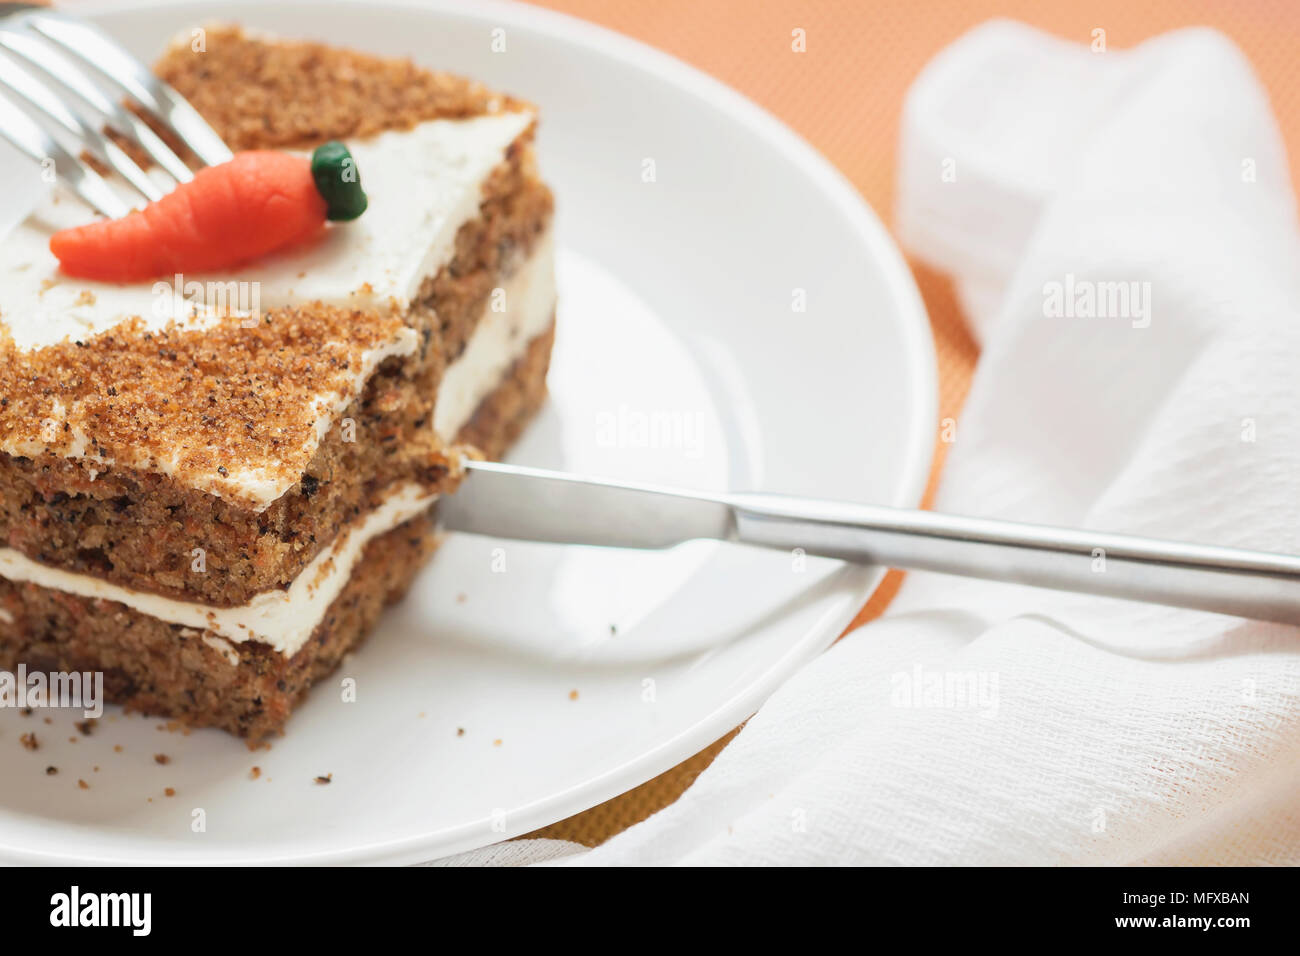 Slice of home made carrot cake, white plate, napkin. Knife cuts an appetizing piece. Sweet healthy vegan food. Selective focus, copy space - Stock Image